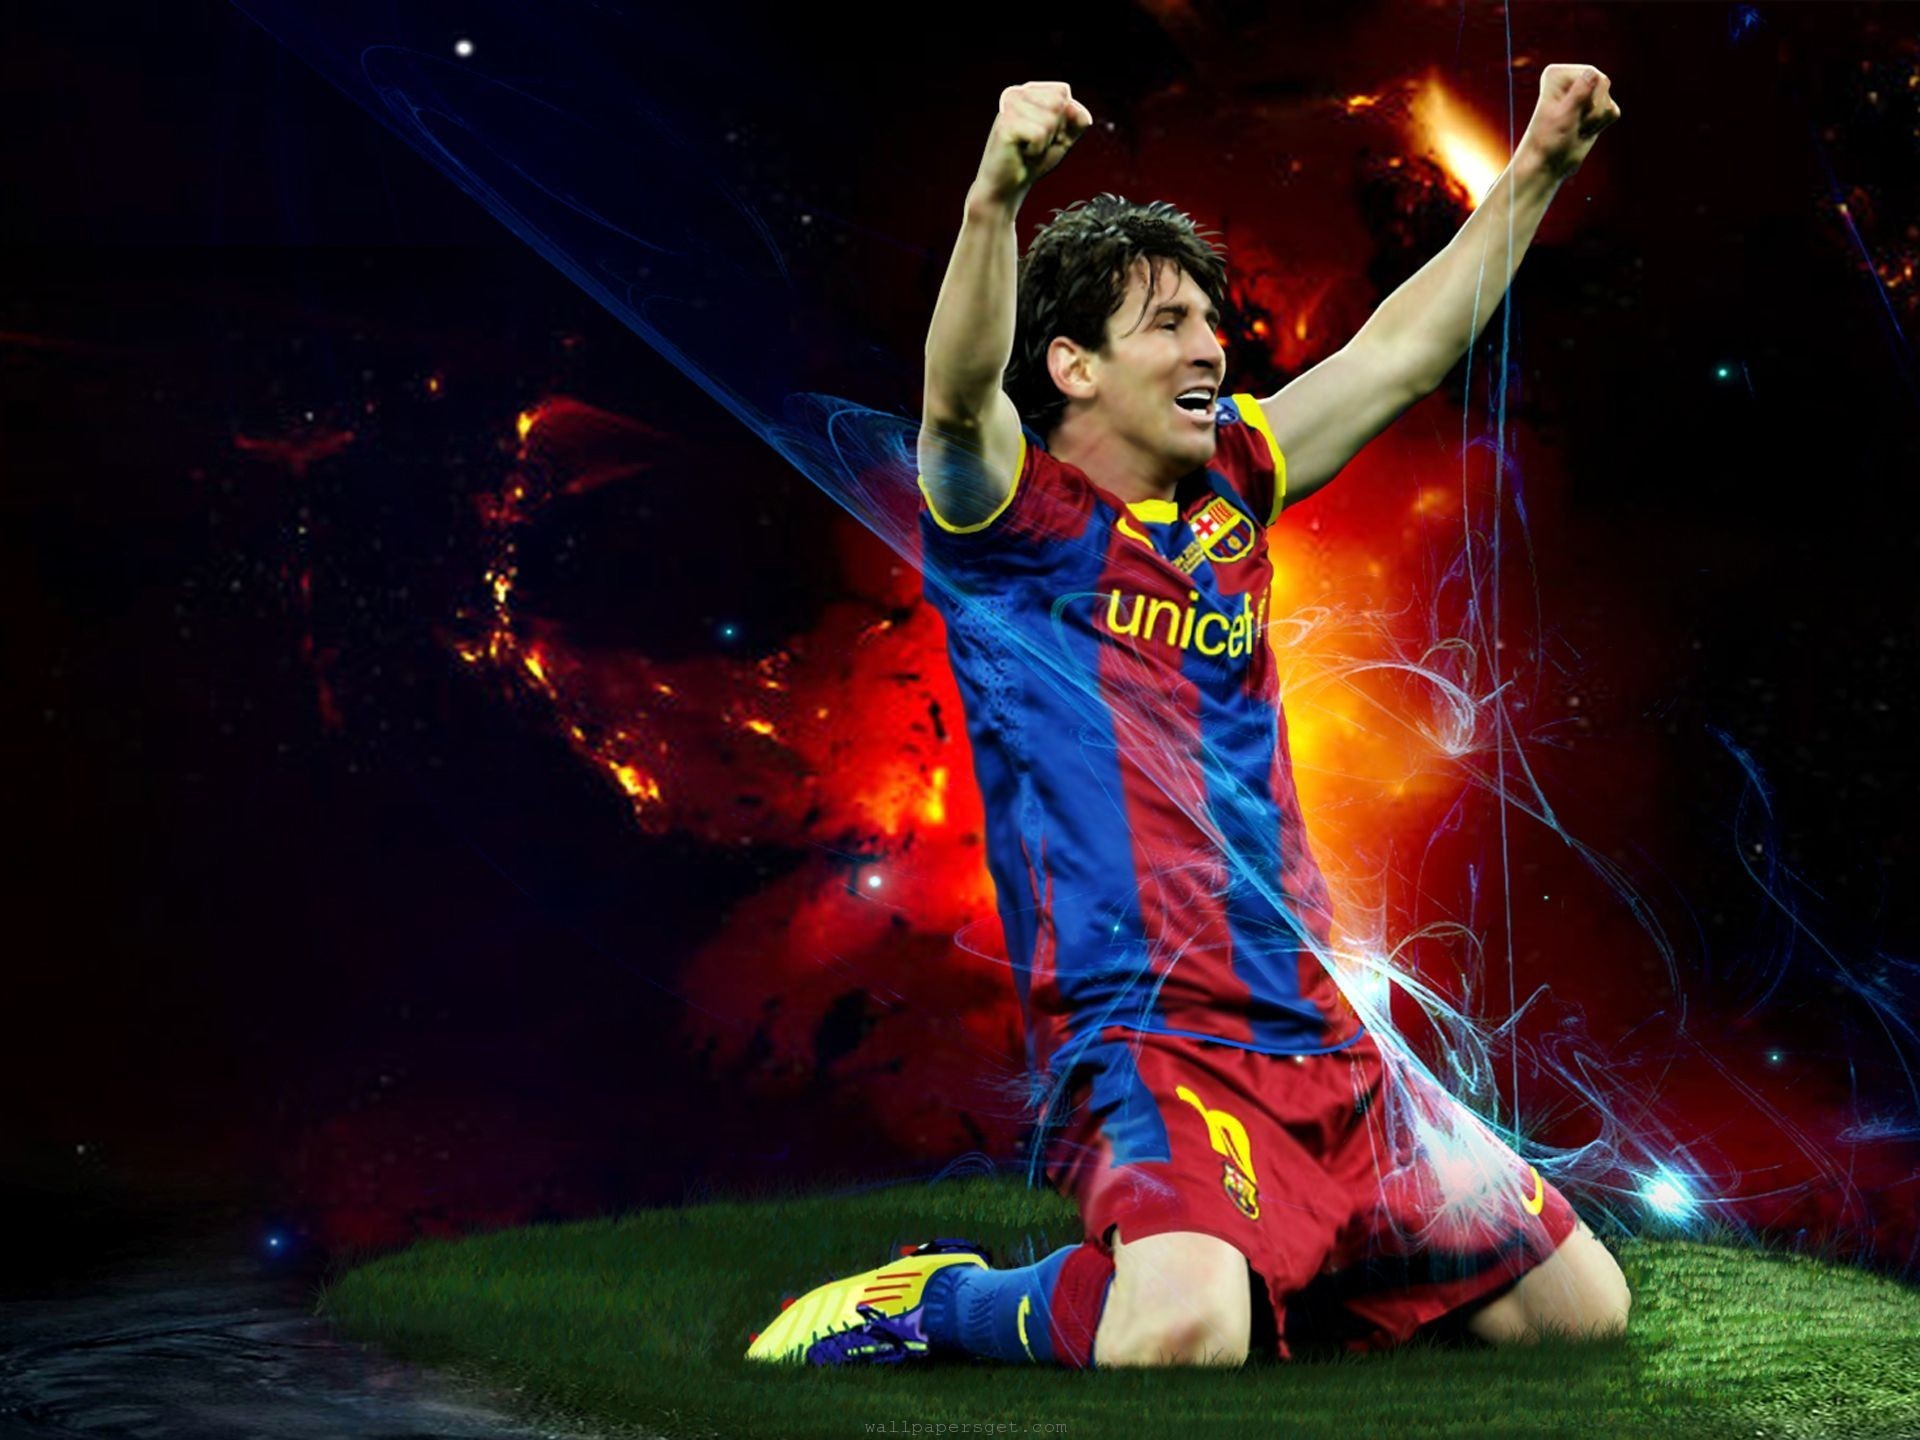 Lionel Messi Argentina Football Player Wallpapers HD Wallpapers 1920x1440